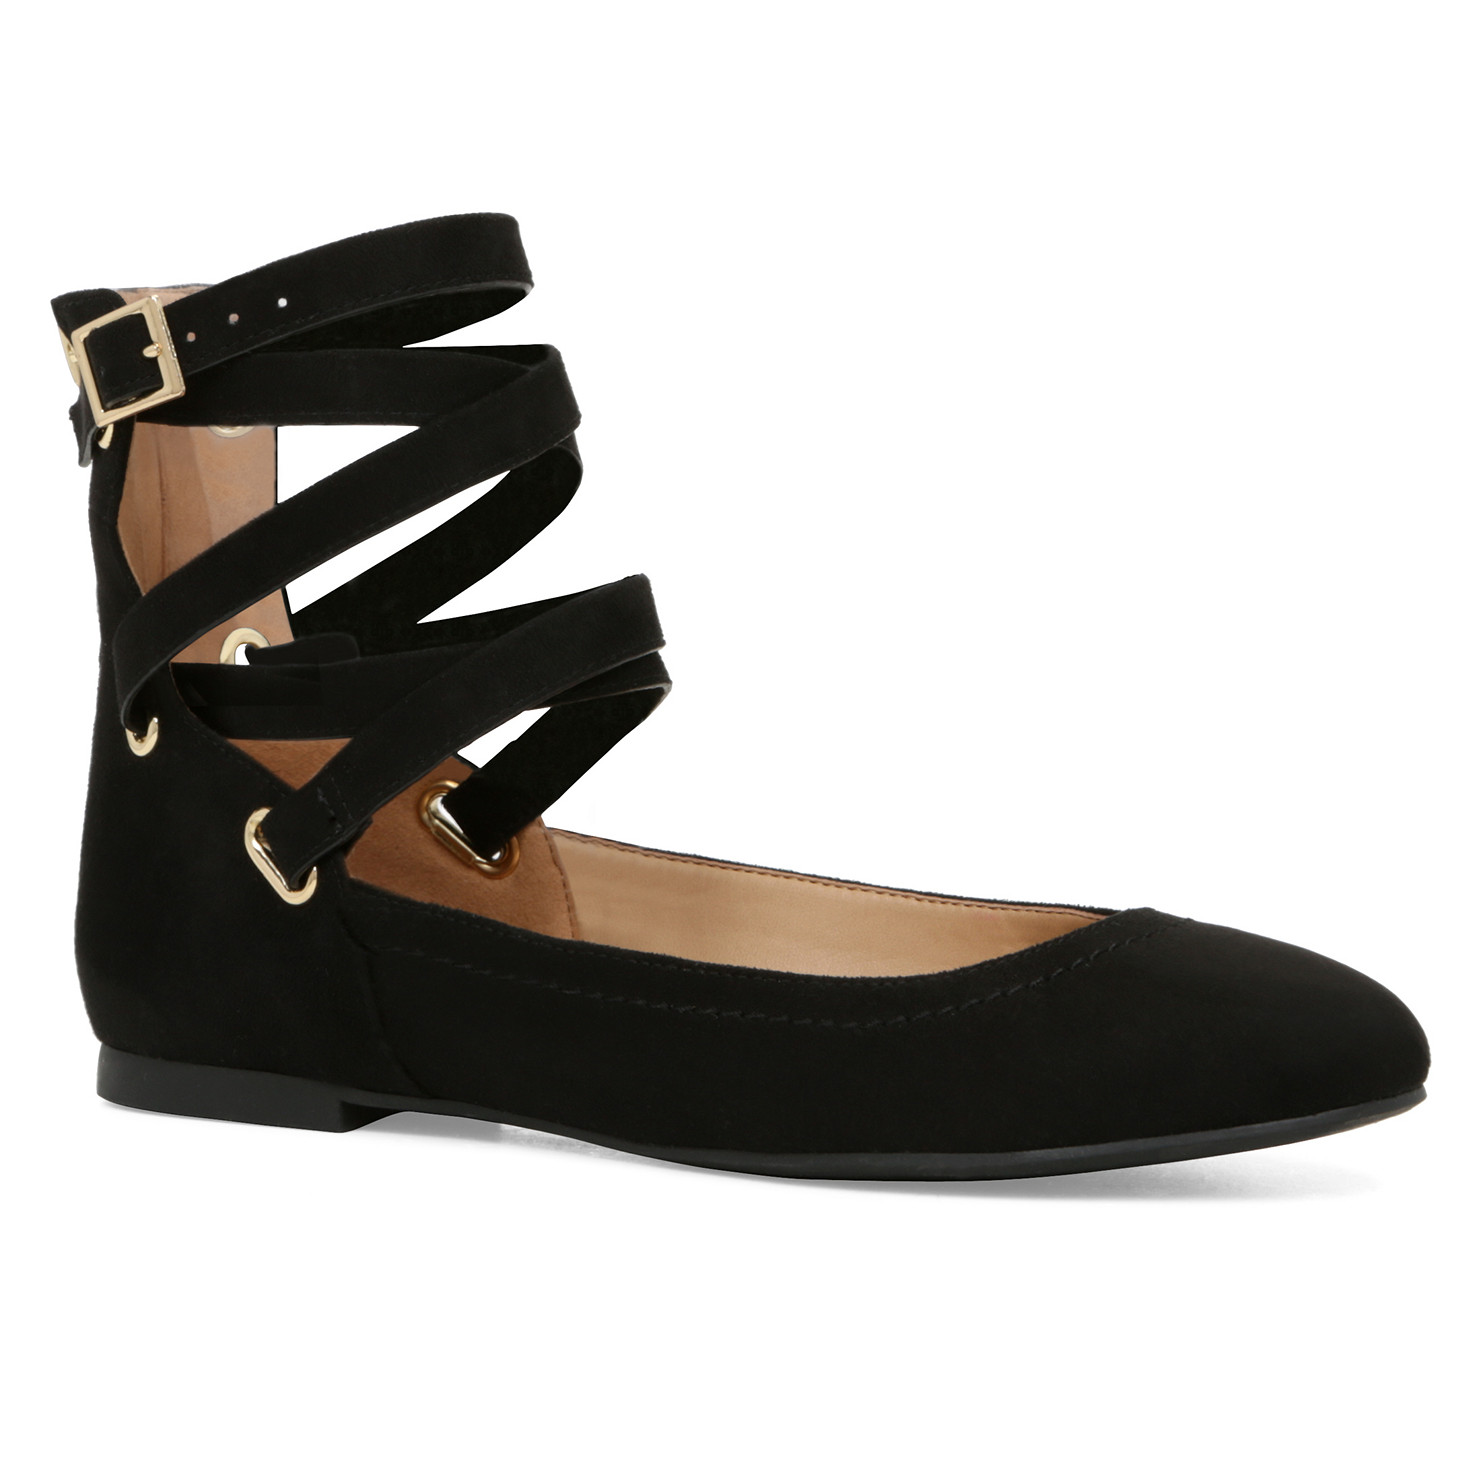 7ce74f17c0 current obsession......ballerina pumps! | MyFashionable40s